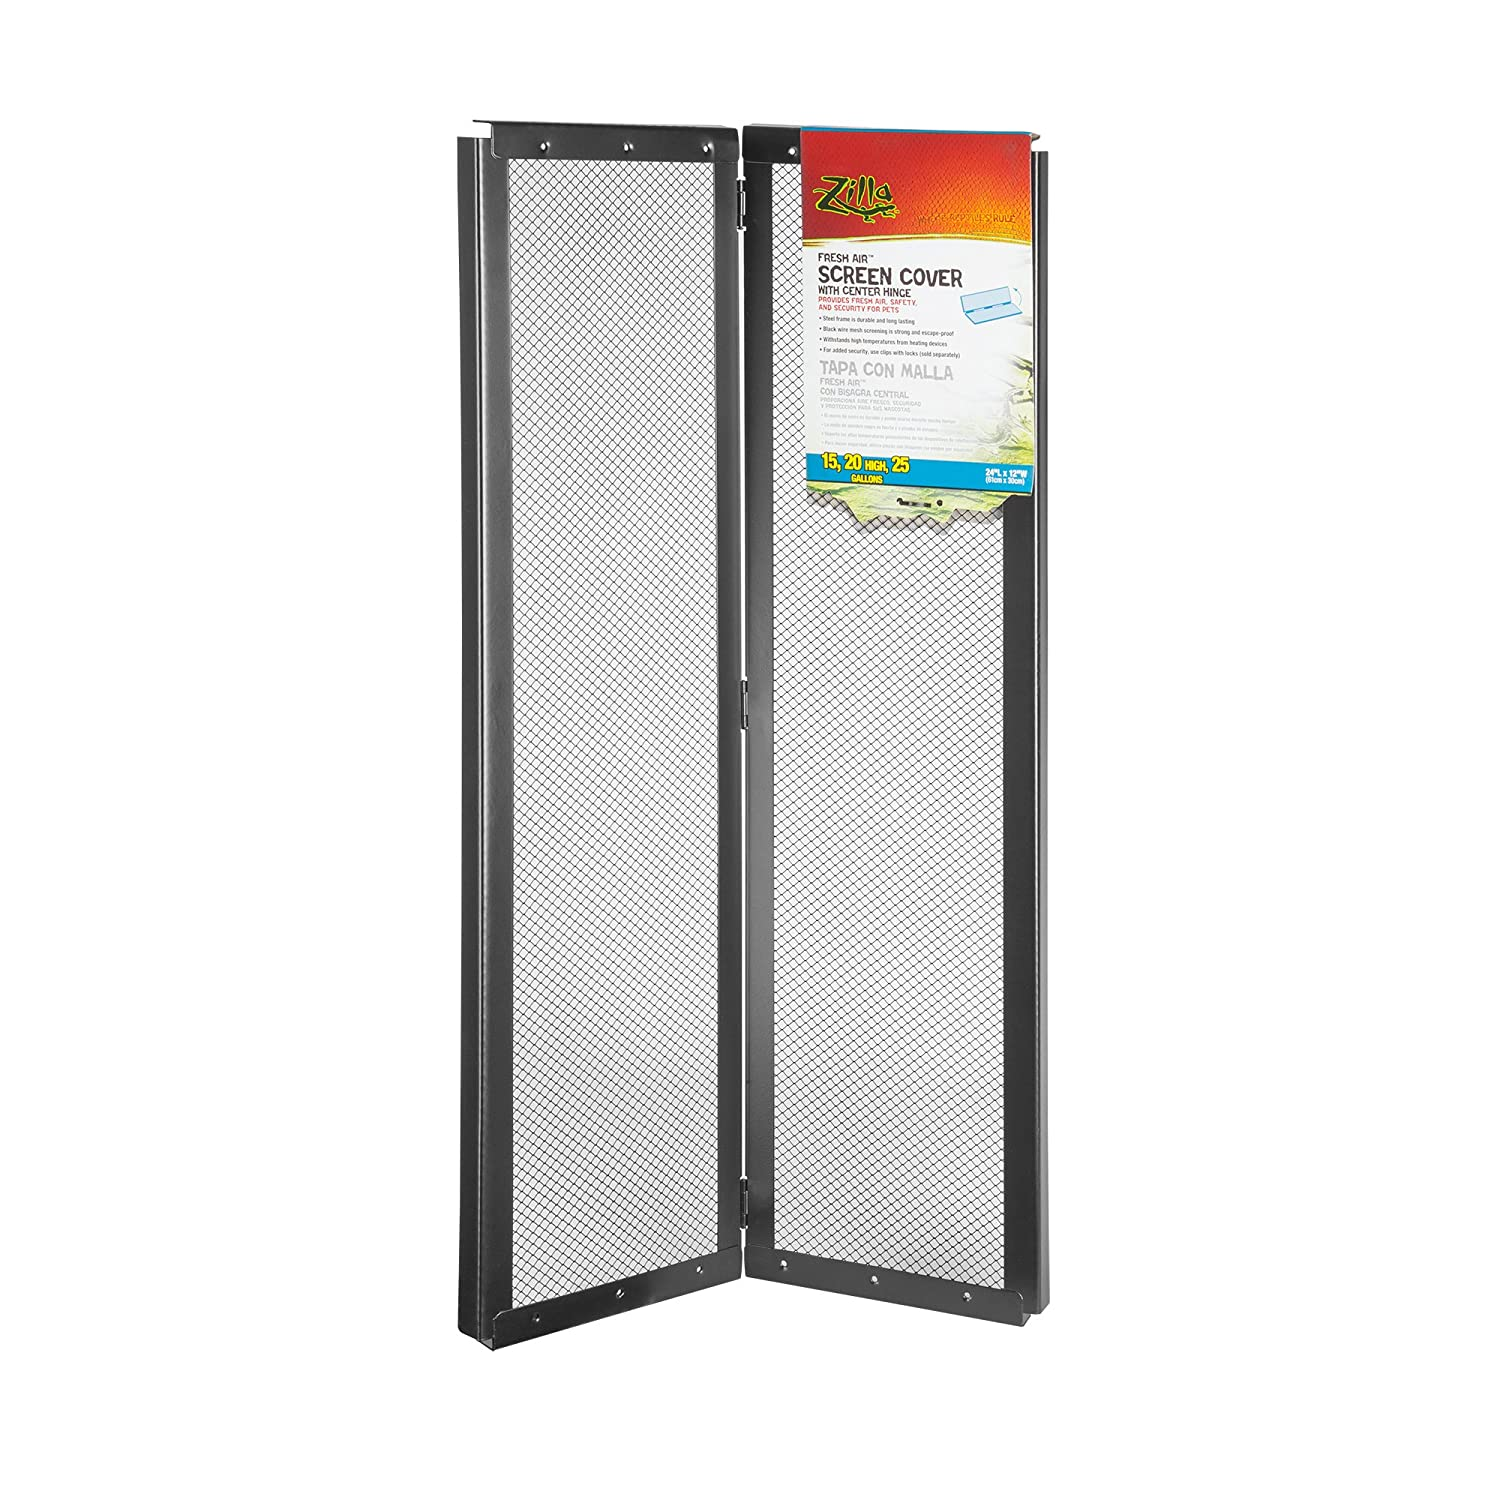 Zilla Fresh Air Screen Cover with Hinge